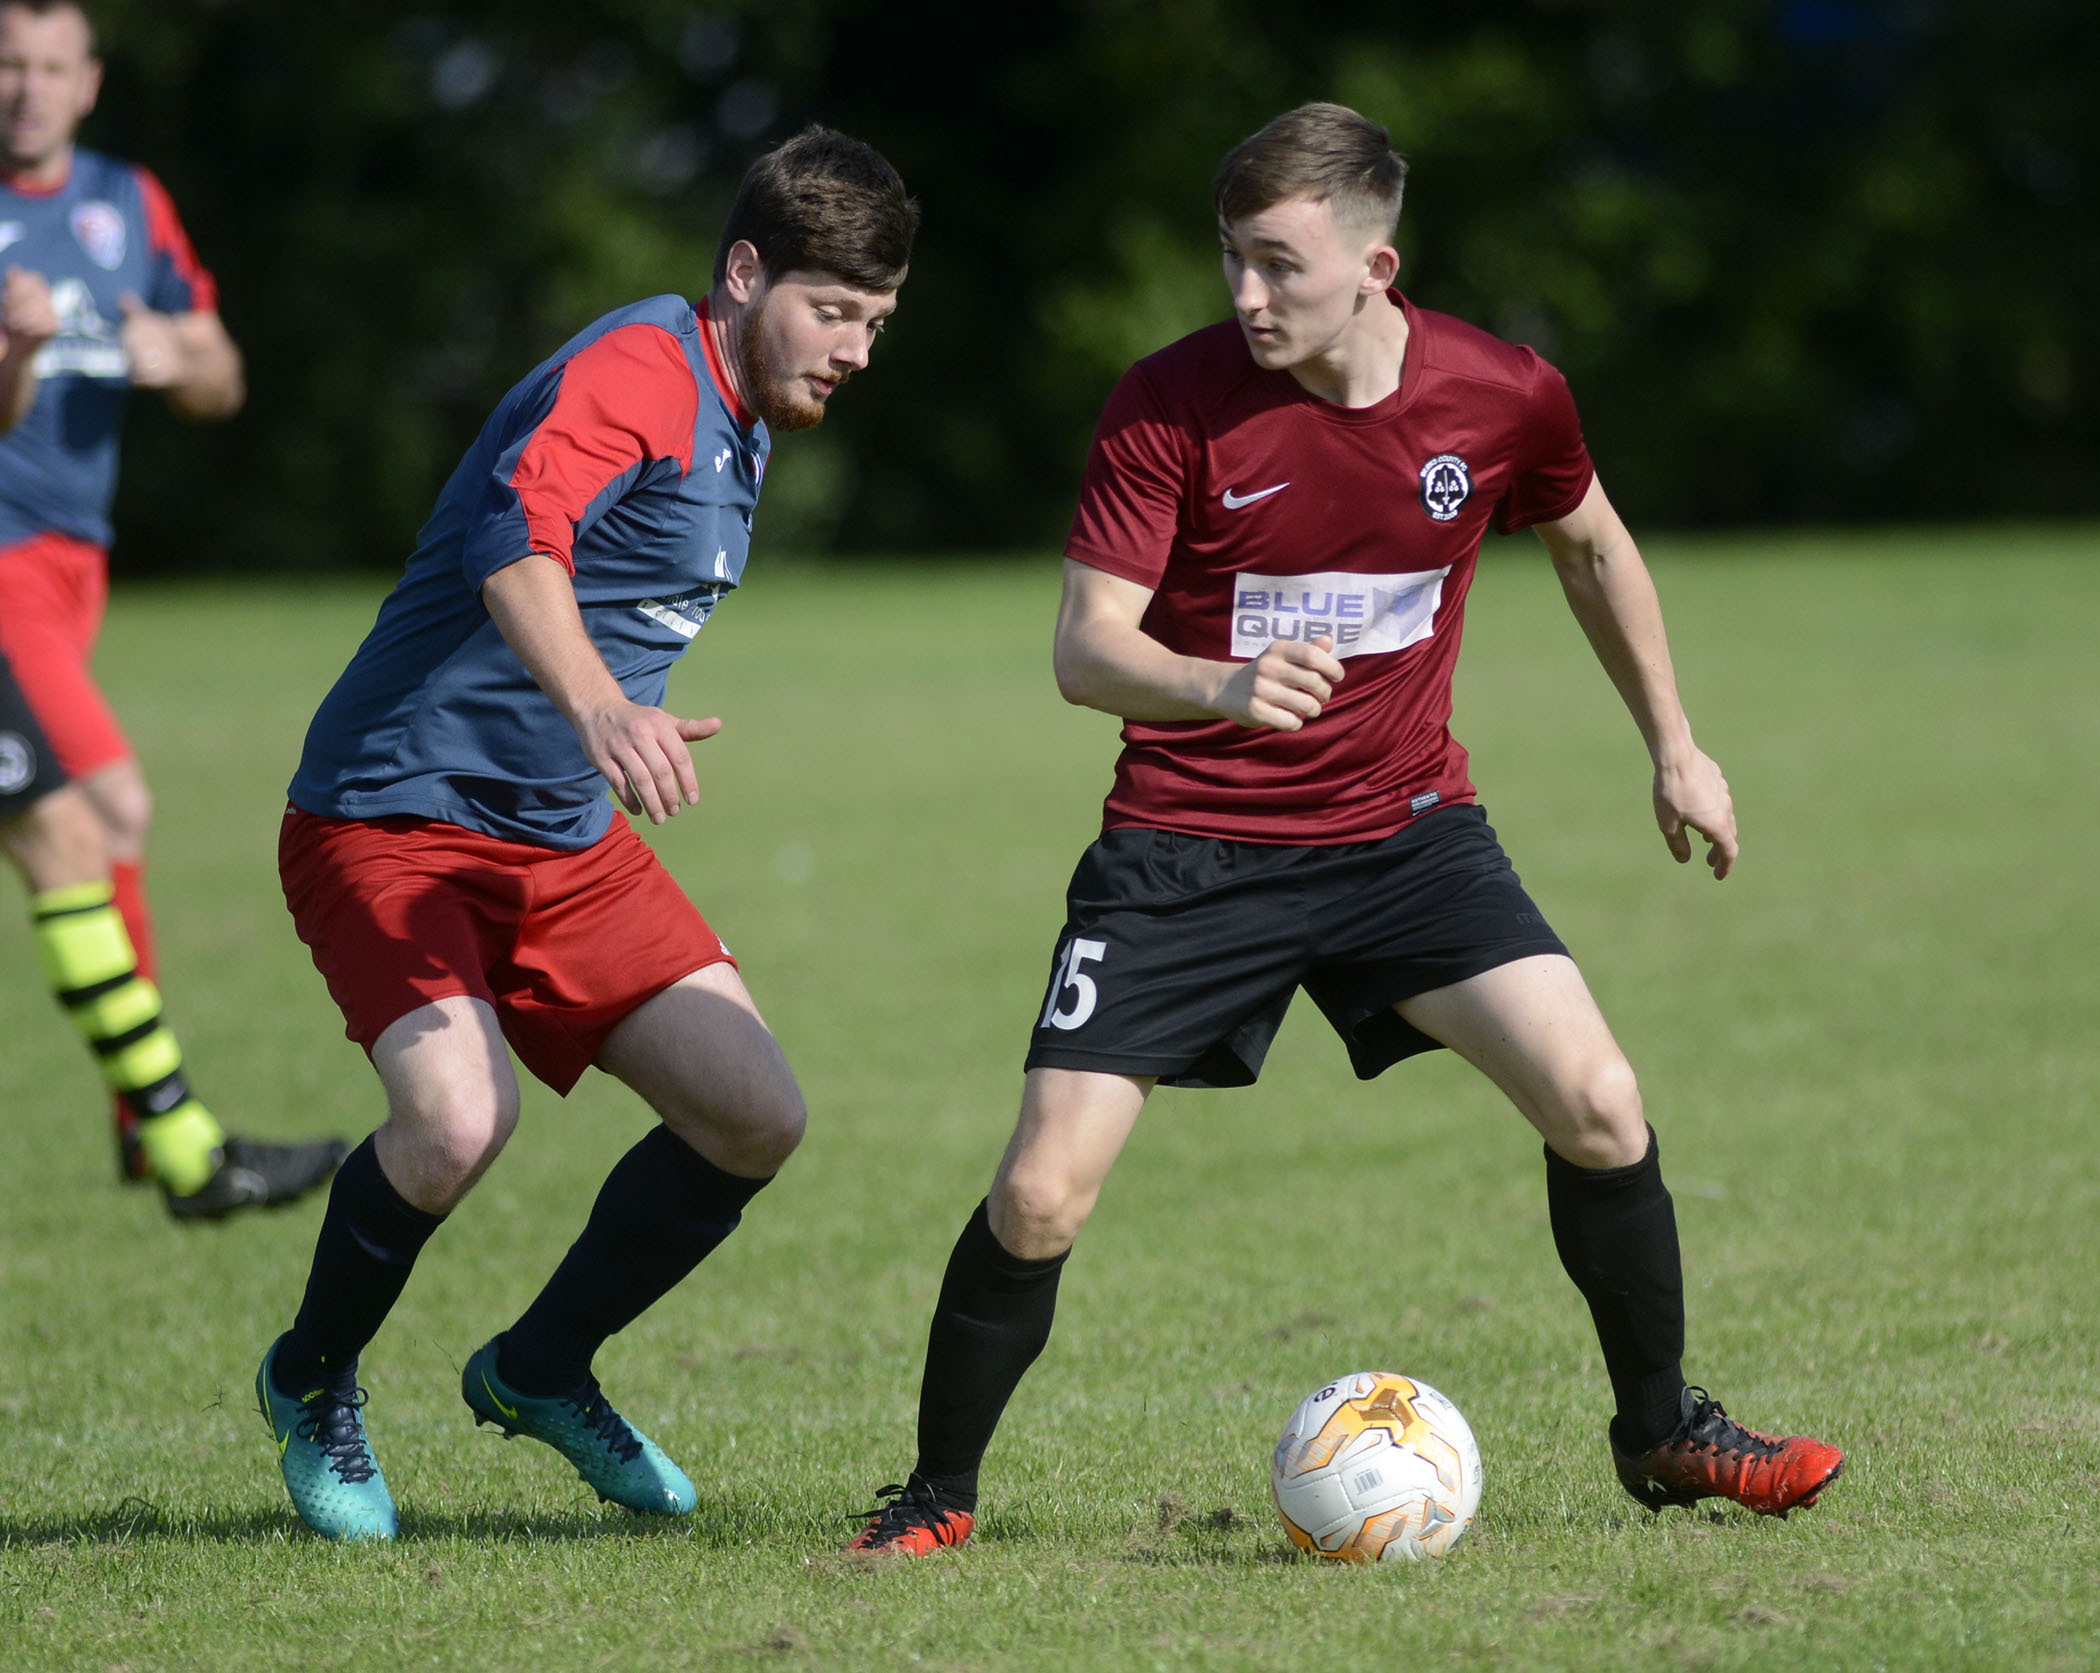 Action from Bracknell Athletic's (blue) 3-3 draw with Berks County